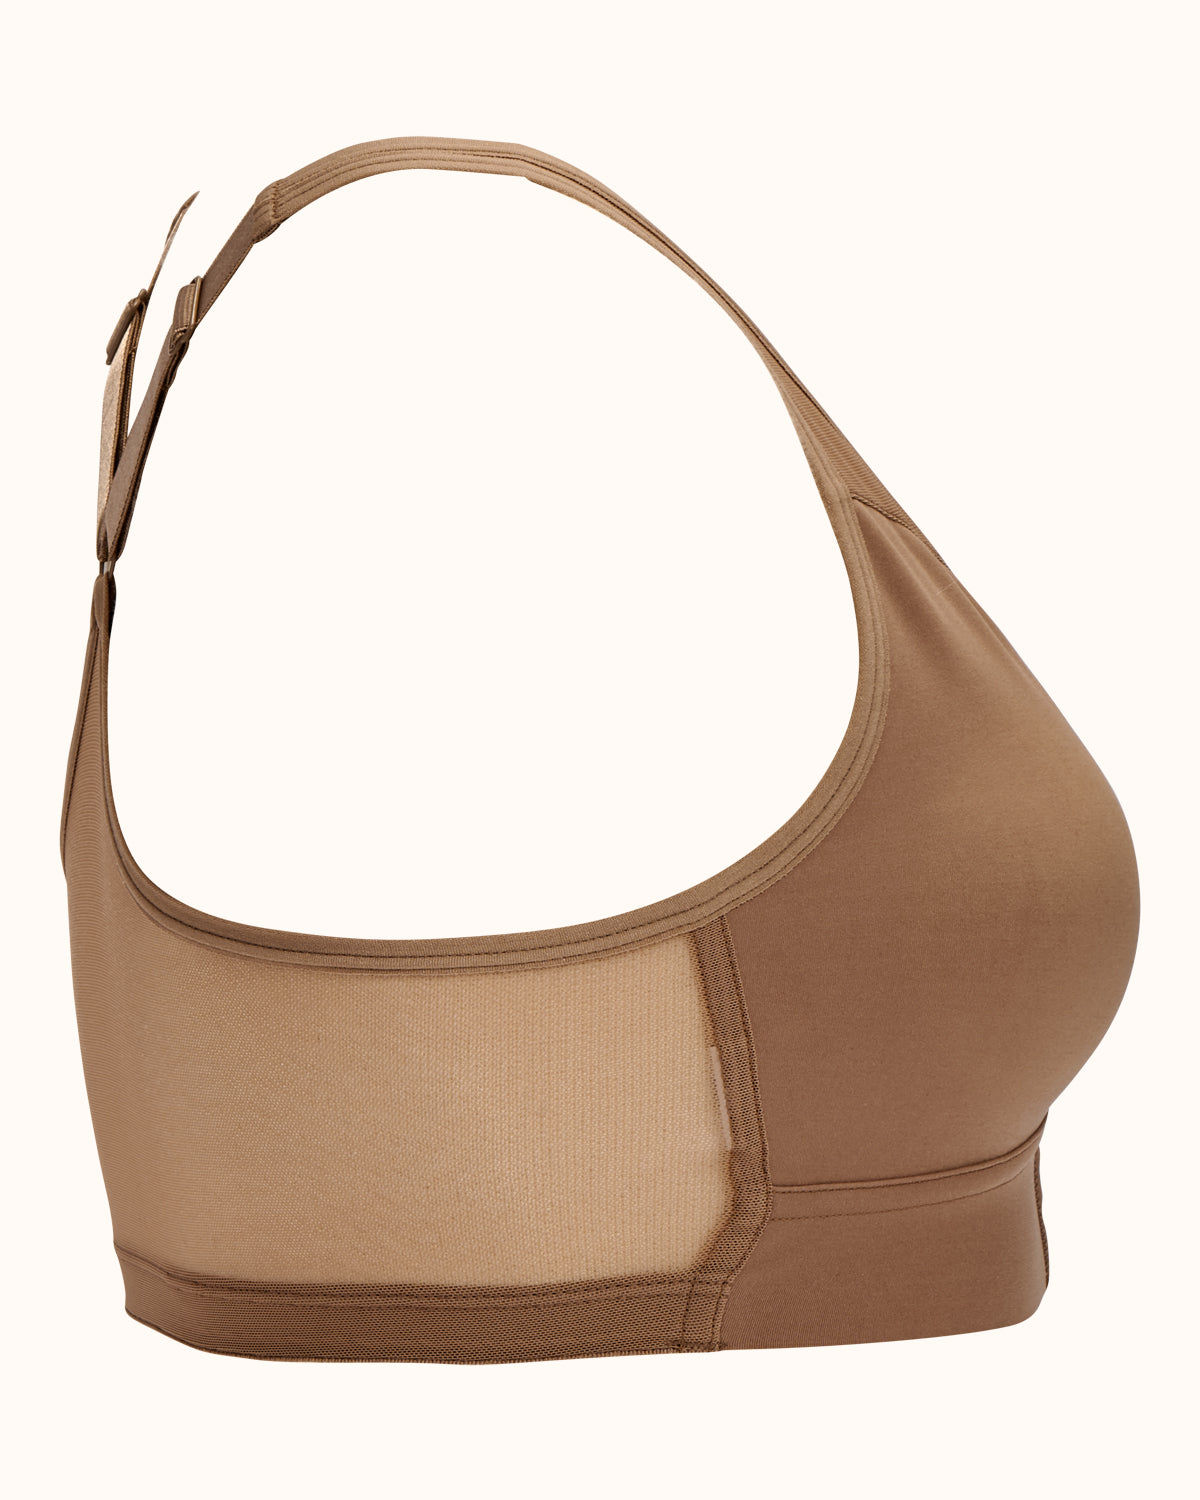 Sand, pocketed front closure sports bra with soft wireless cups, adjustable straps and mesh paneling on cross back.